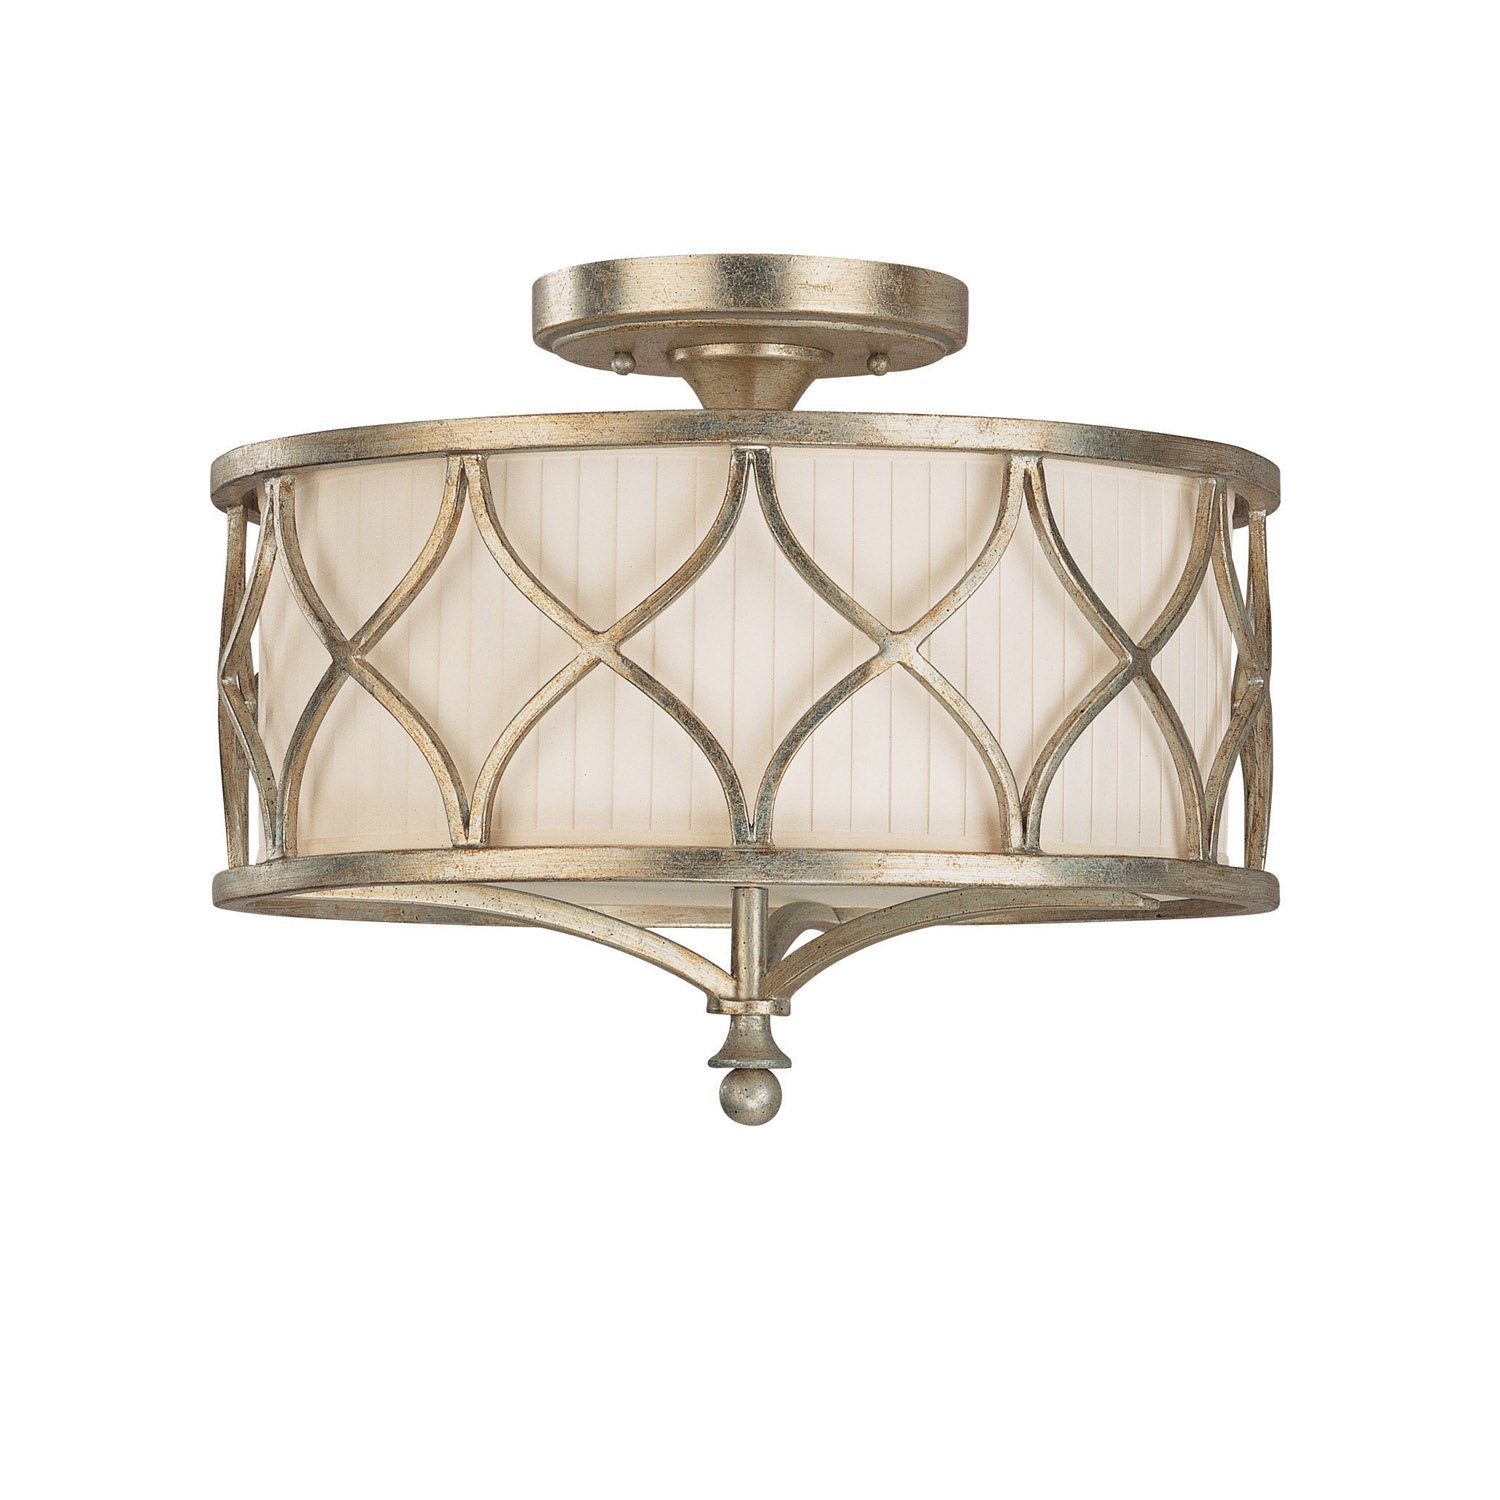 Capital Lighting 4003WG 487 Semi Flush Mount with Frosted Glass